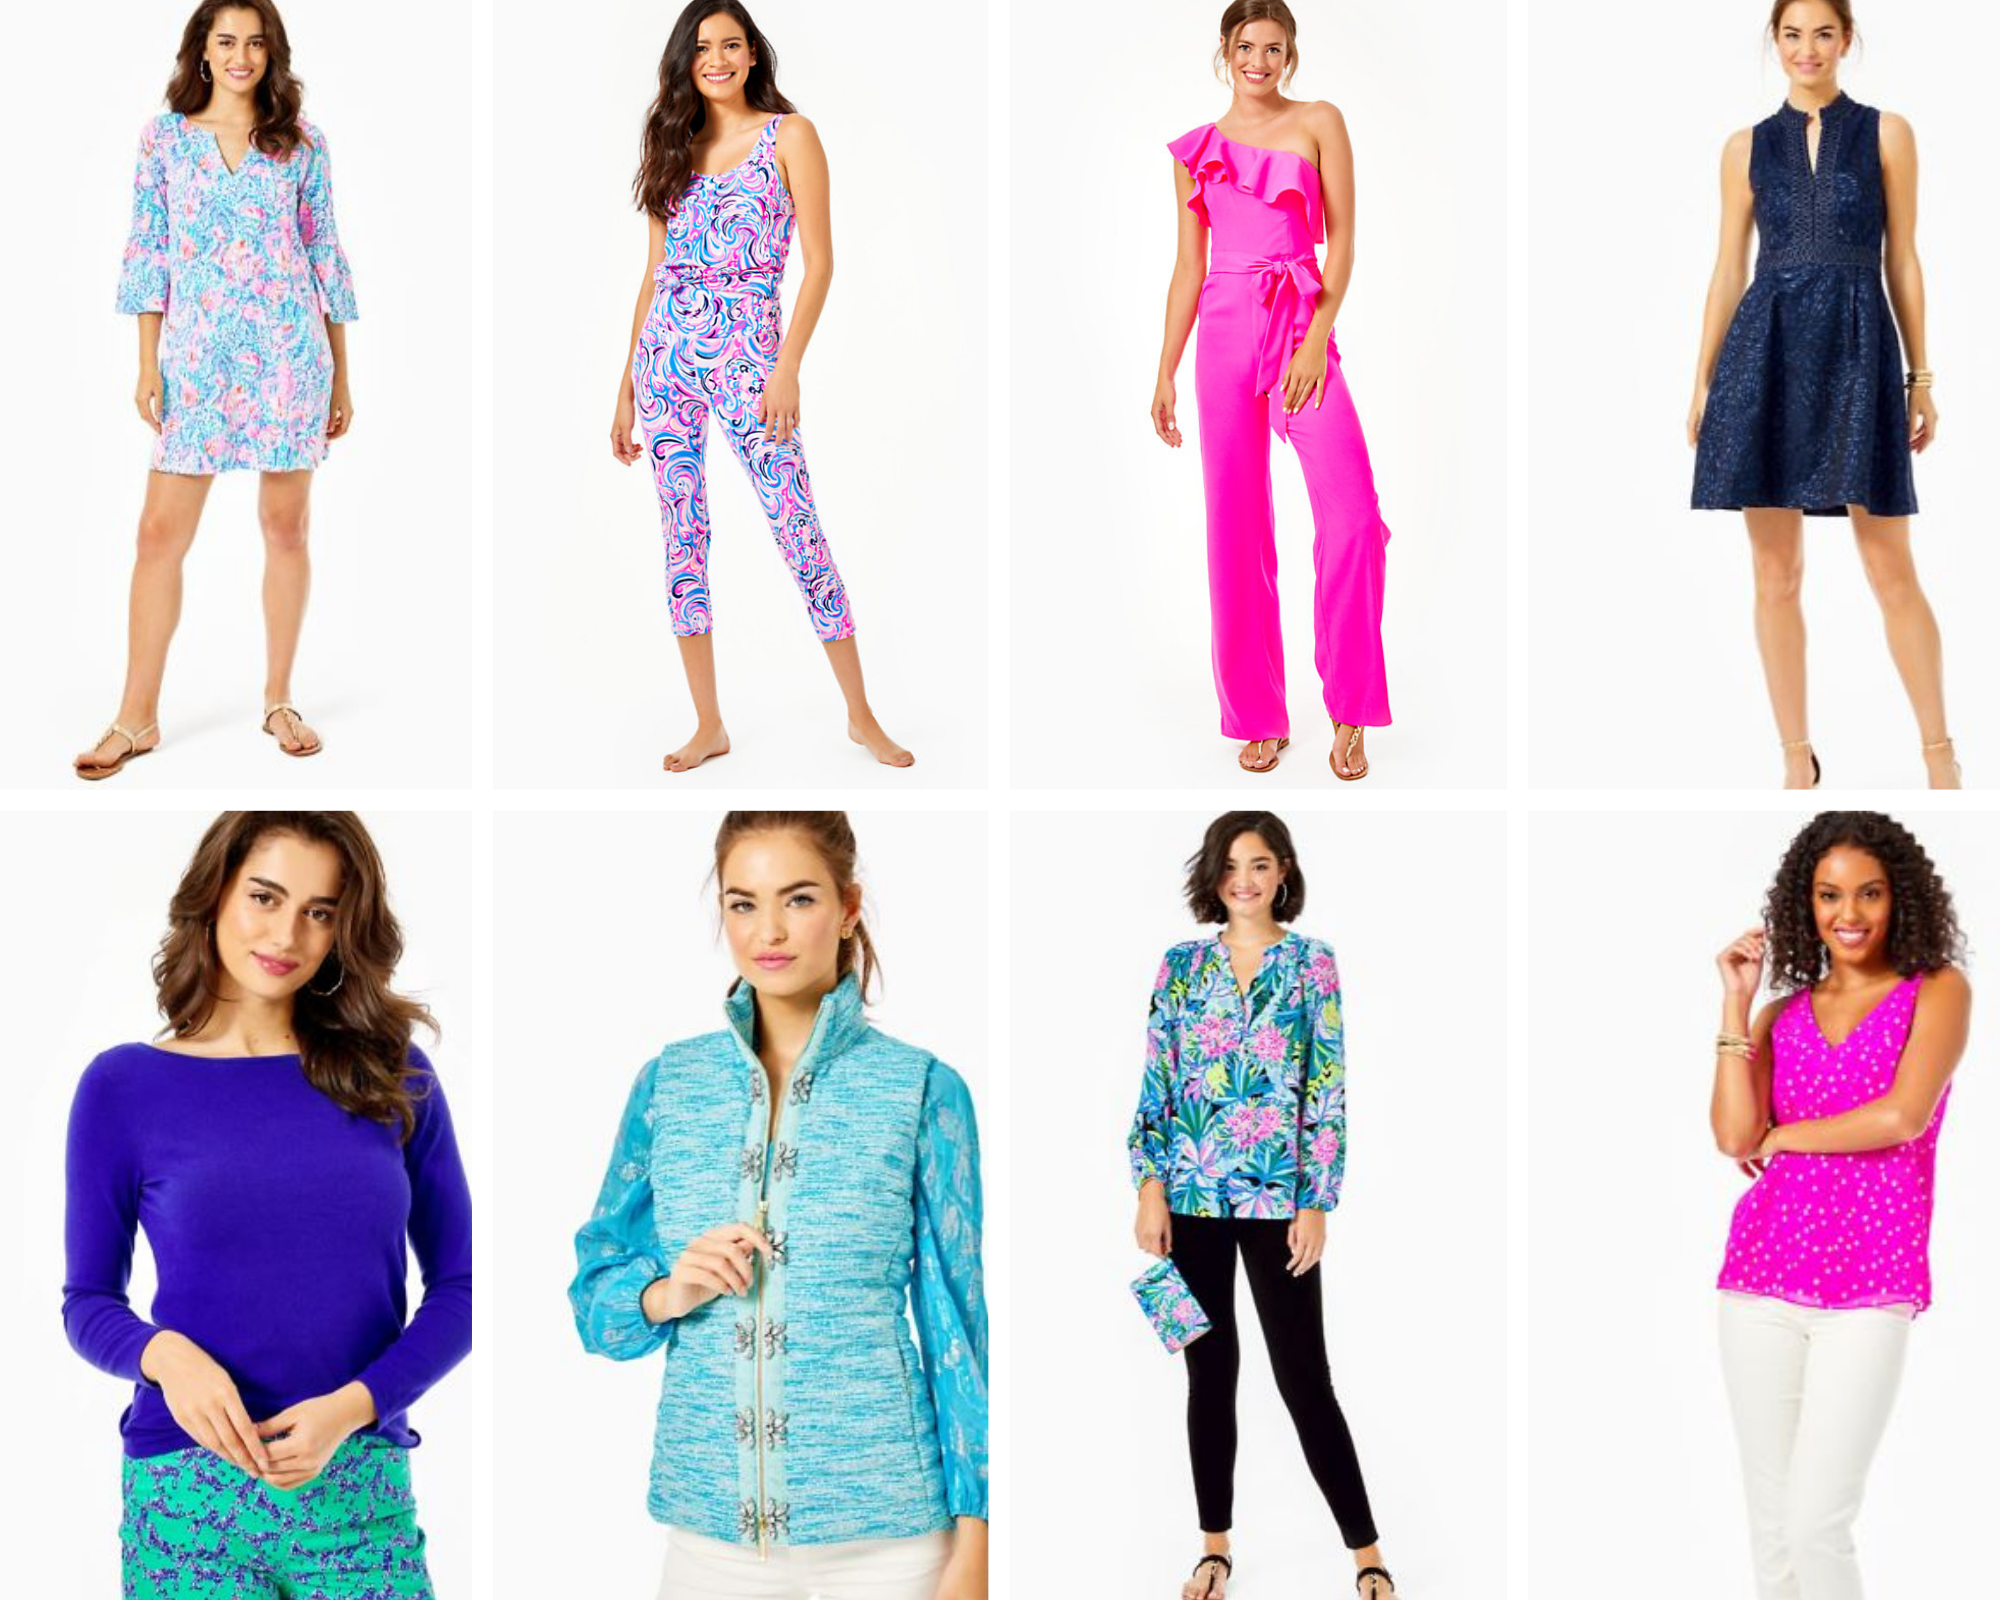 Lilly Pulitzer popular items